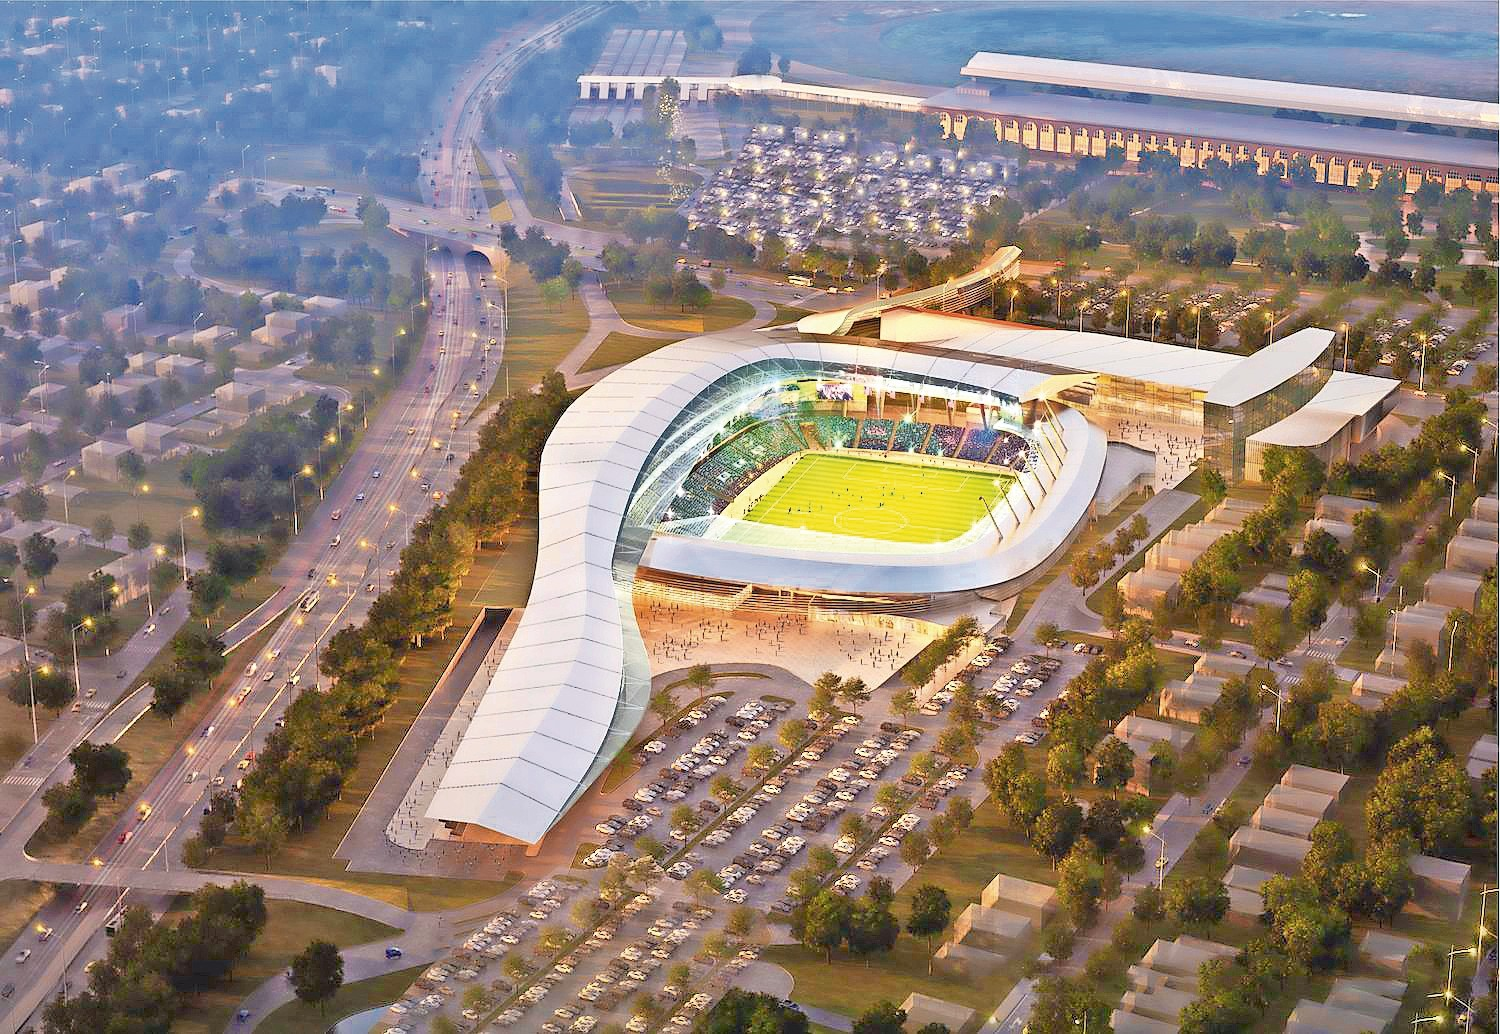 Professional soccer team, New York Cosmos, hope to build a 25,000-seat stadium with a 175-room hotel and restaurant and retail space.